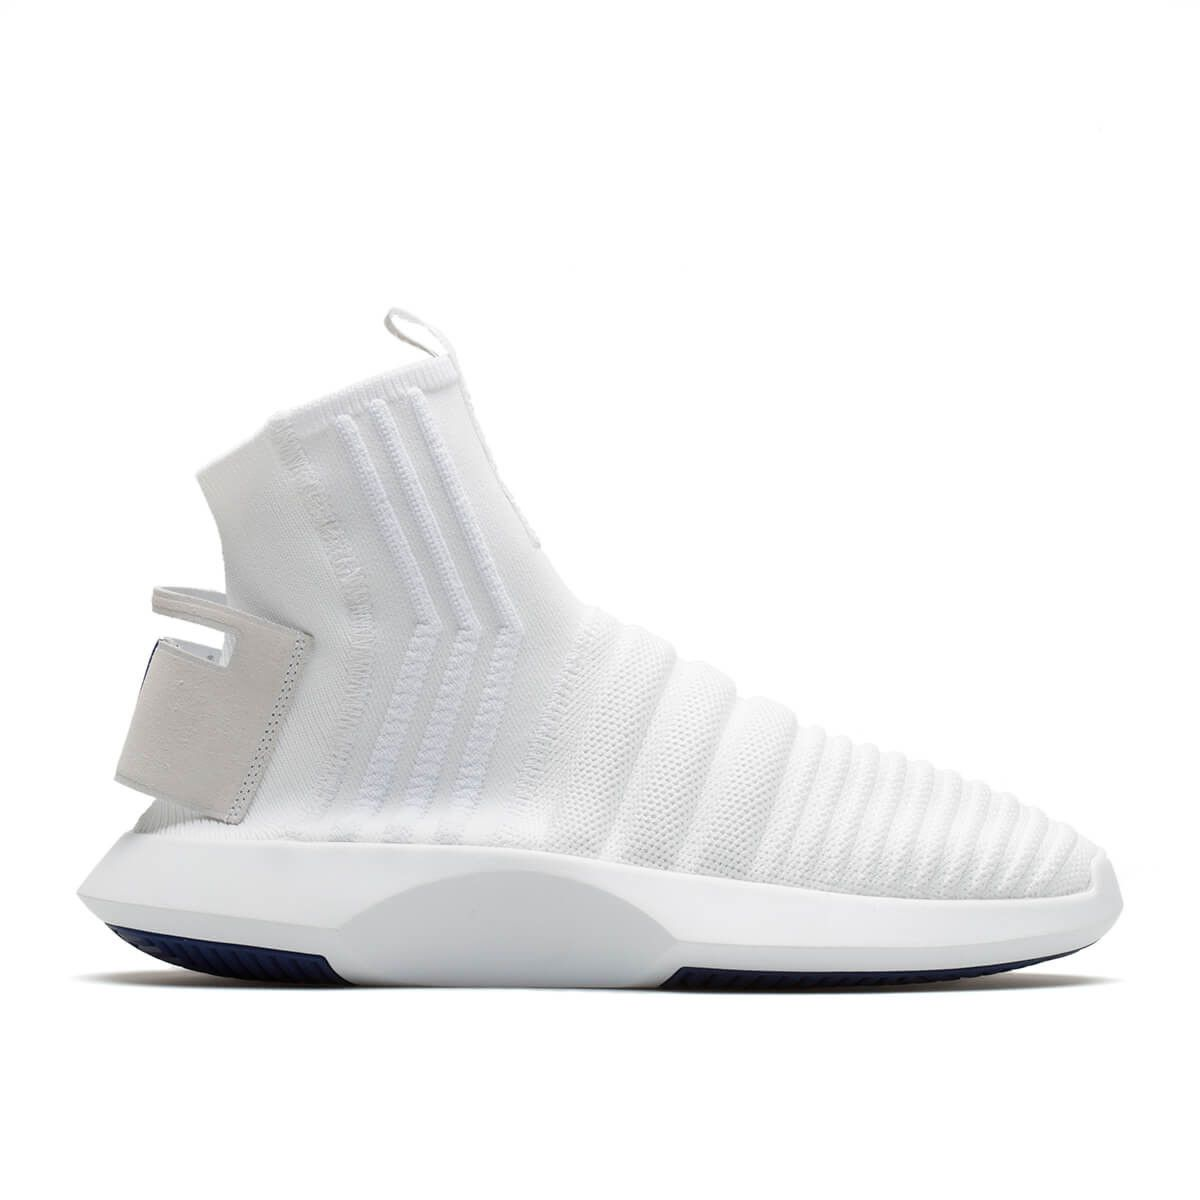 Crazy 1 Adv Sock PK from the S/S2018 Adidas Originals collection ...